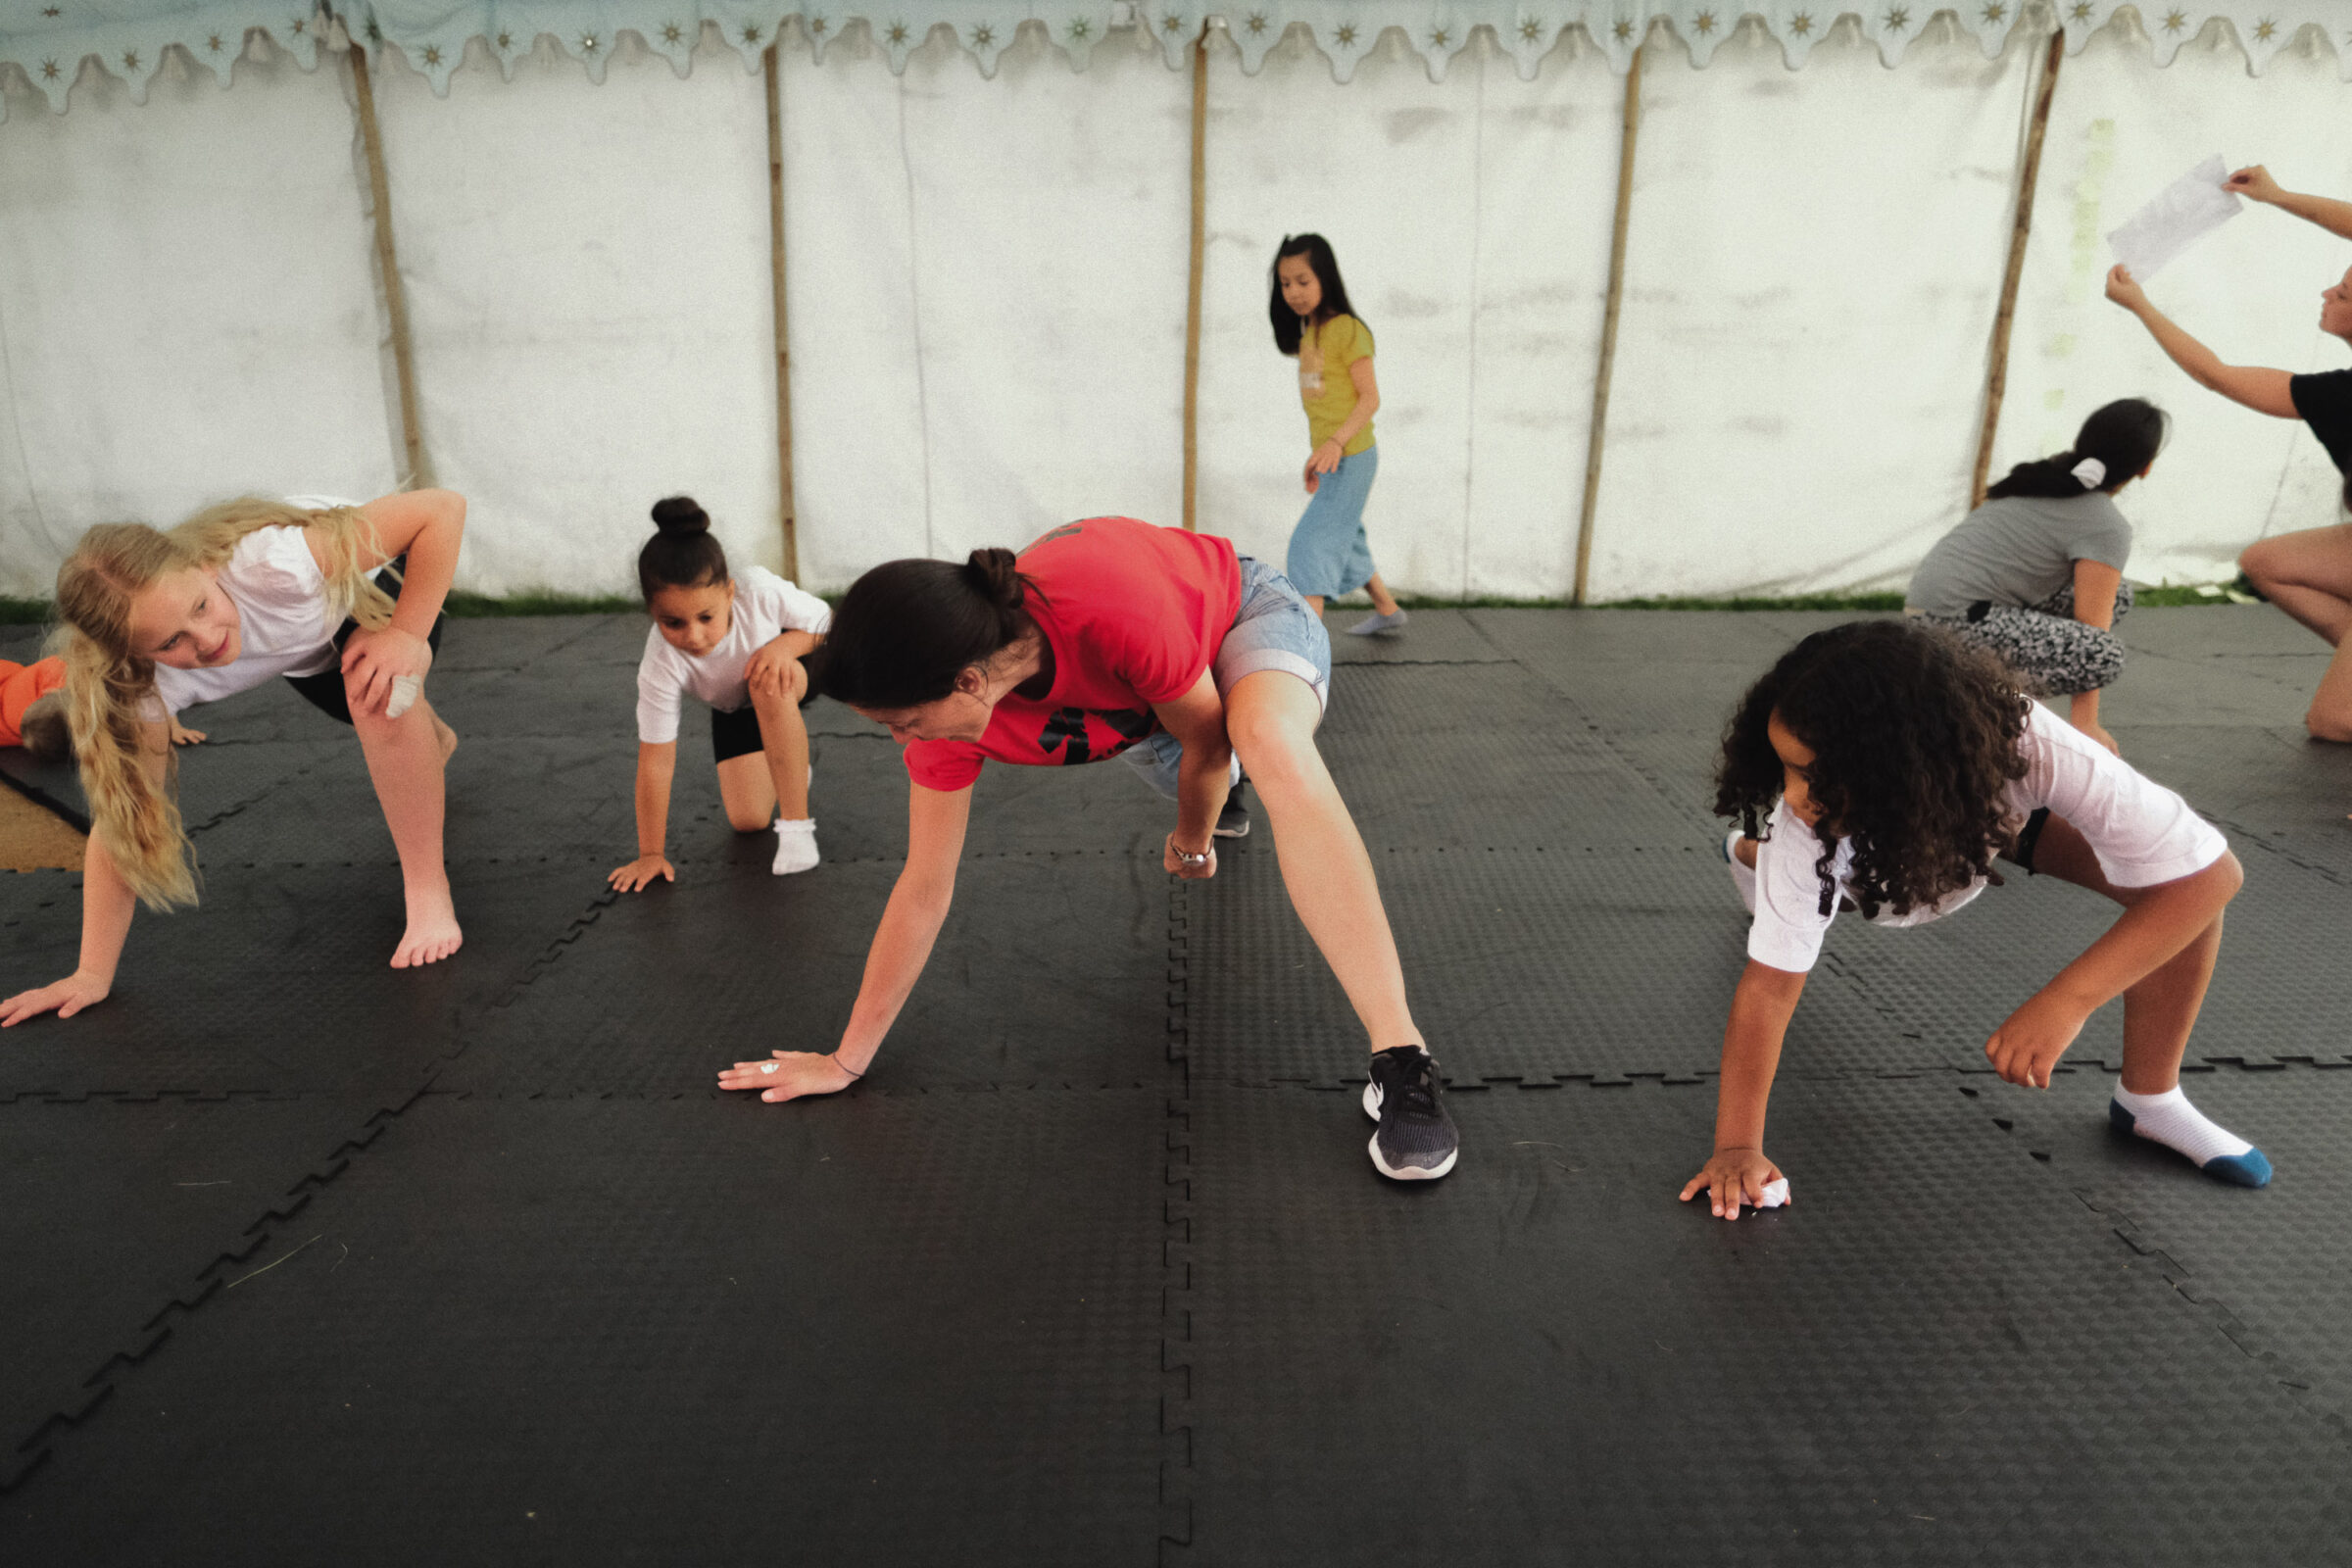 A dance facilitator works with the young people of the Holyrood estate. They are learning a new dance technique using the floor